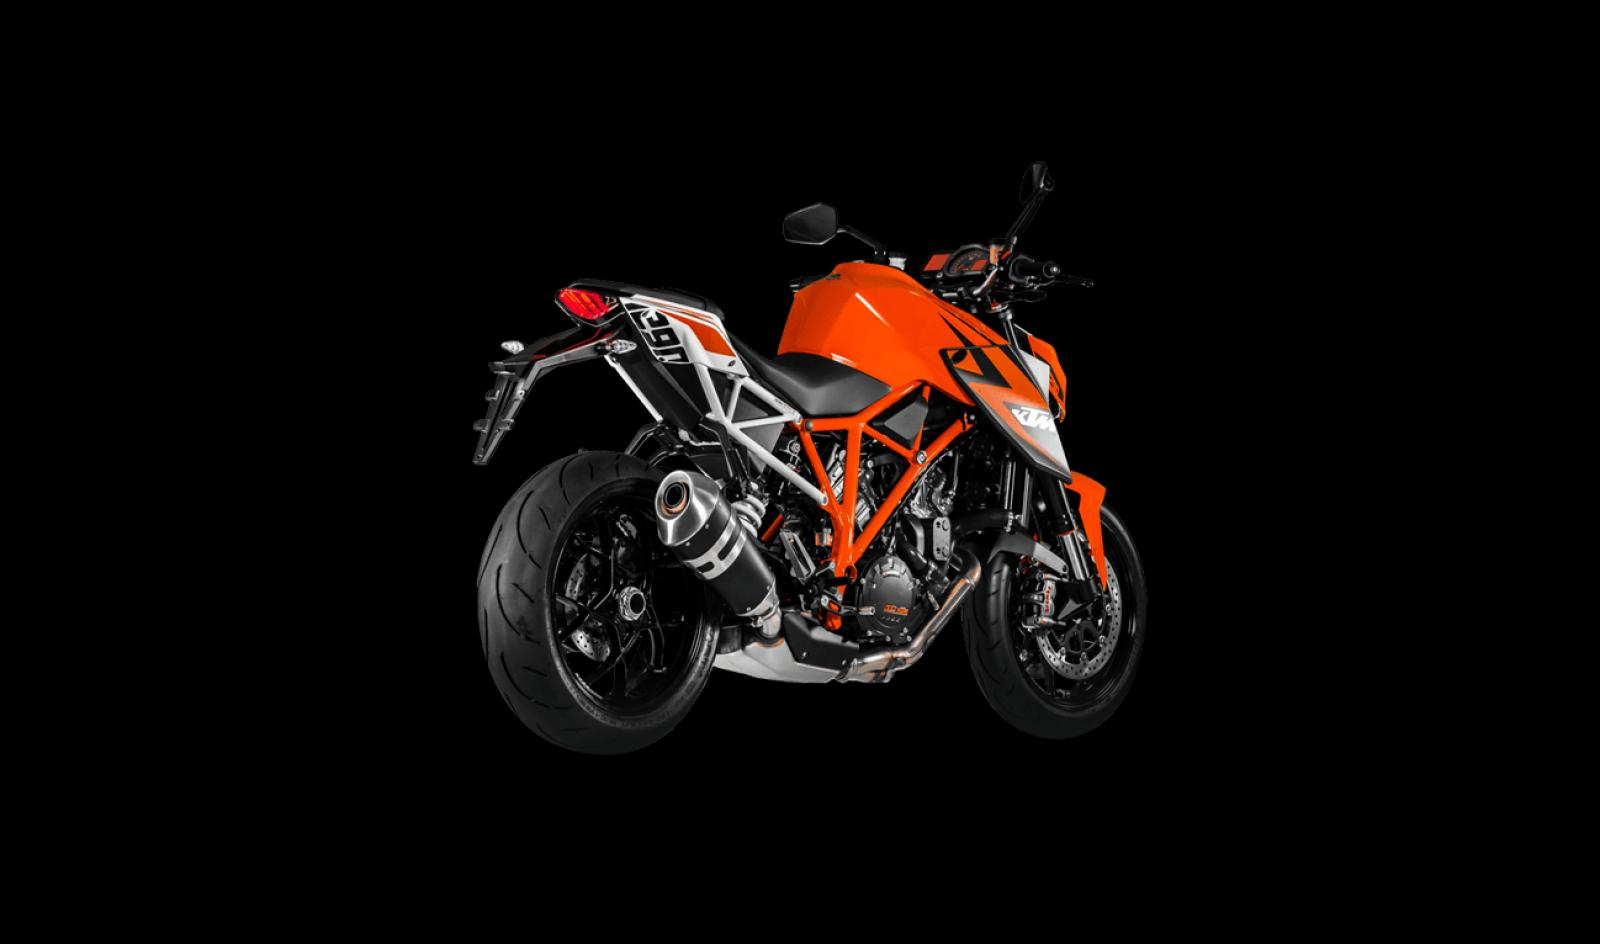 2014 ktm 1290 super duke r moto zombdrive com. Black Bedroom Furniture Sets. Home Design Ideas